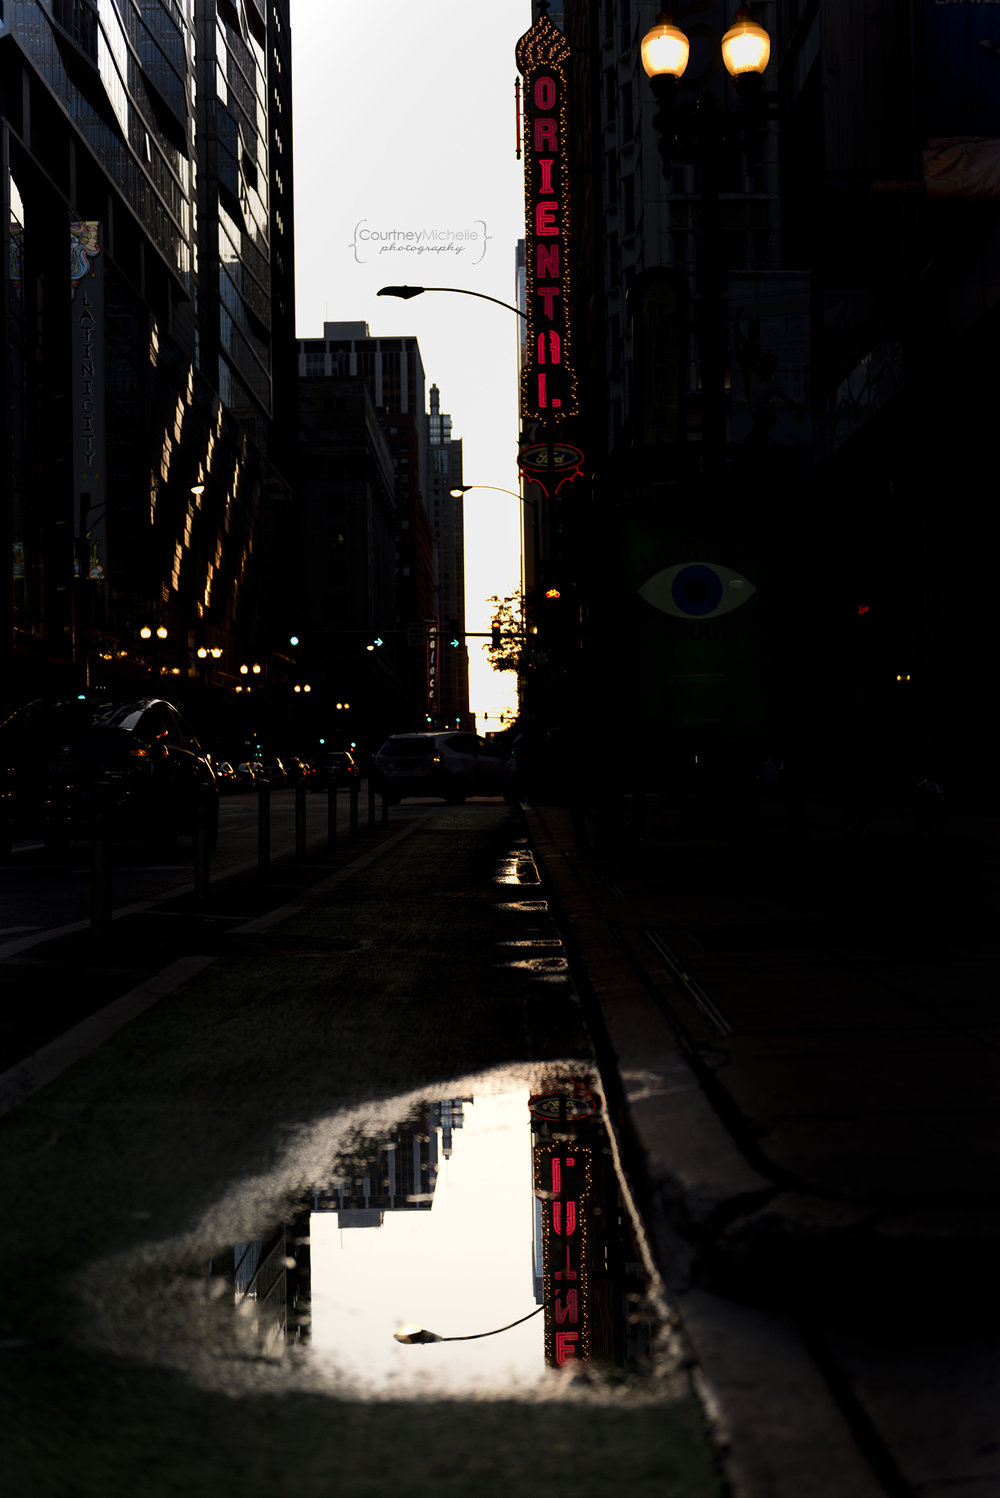 Chicagohenge_oriental_theater_puddle_reflection_state_street_the loop_chicago_downtown_chicago_©COPYRIGHTCMP-7664.jpg